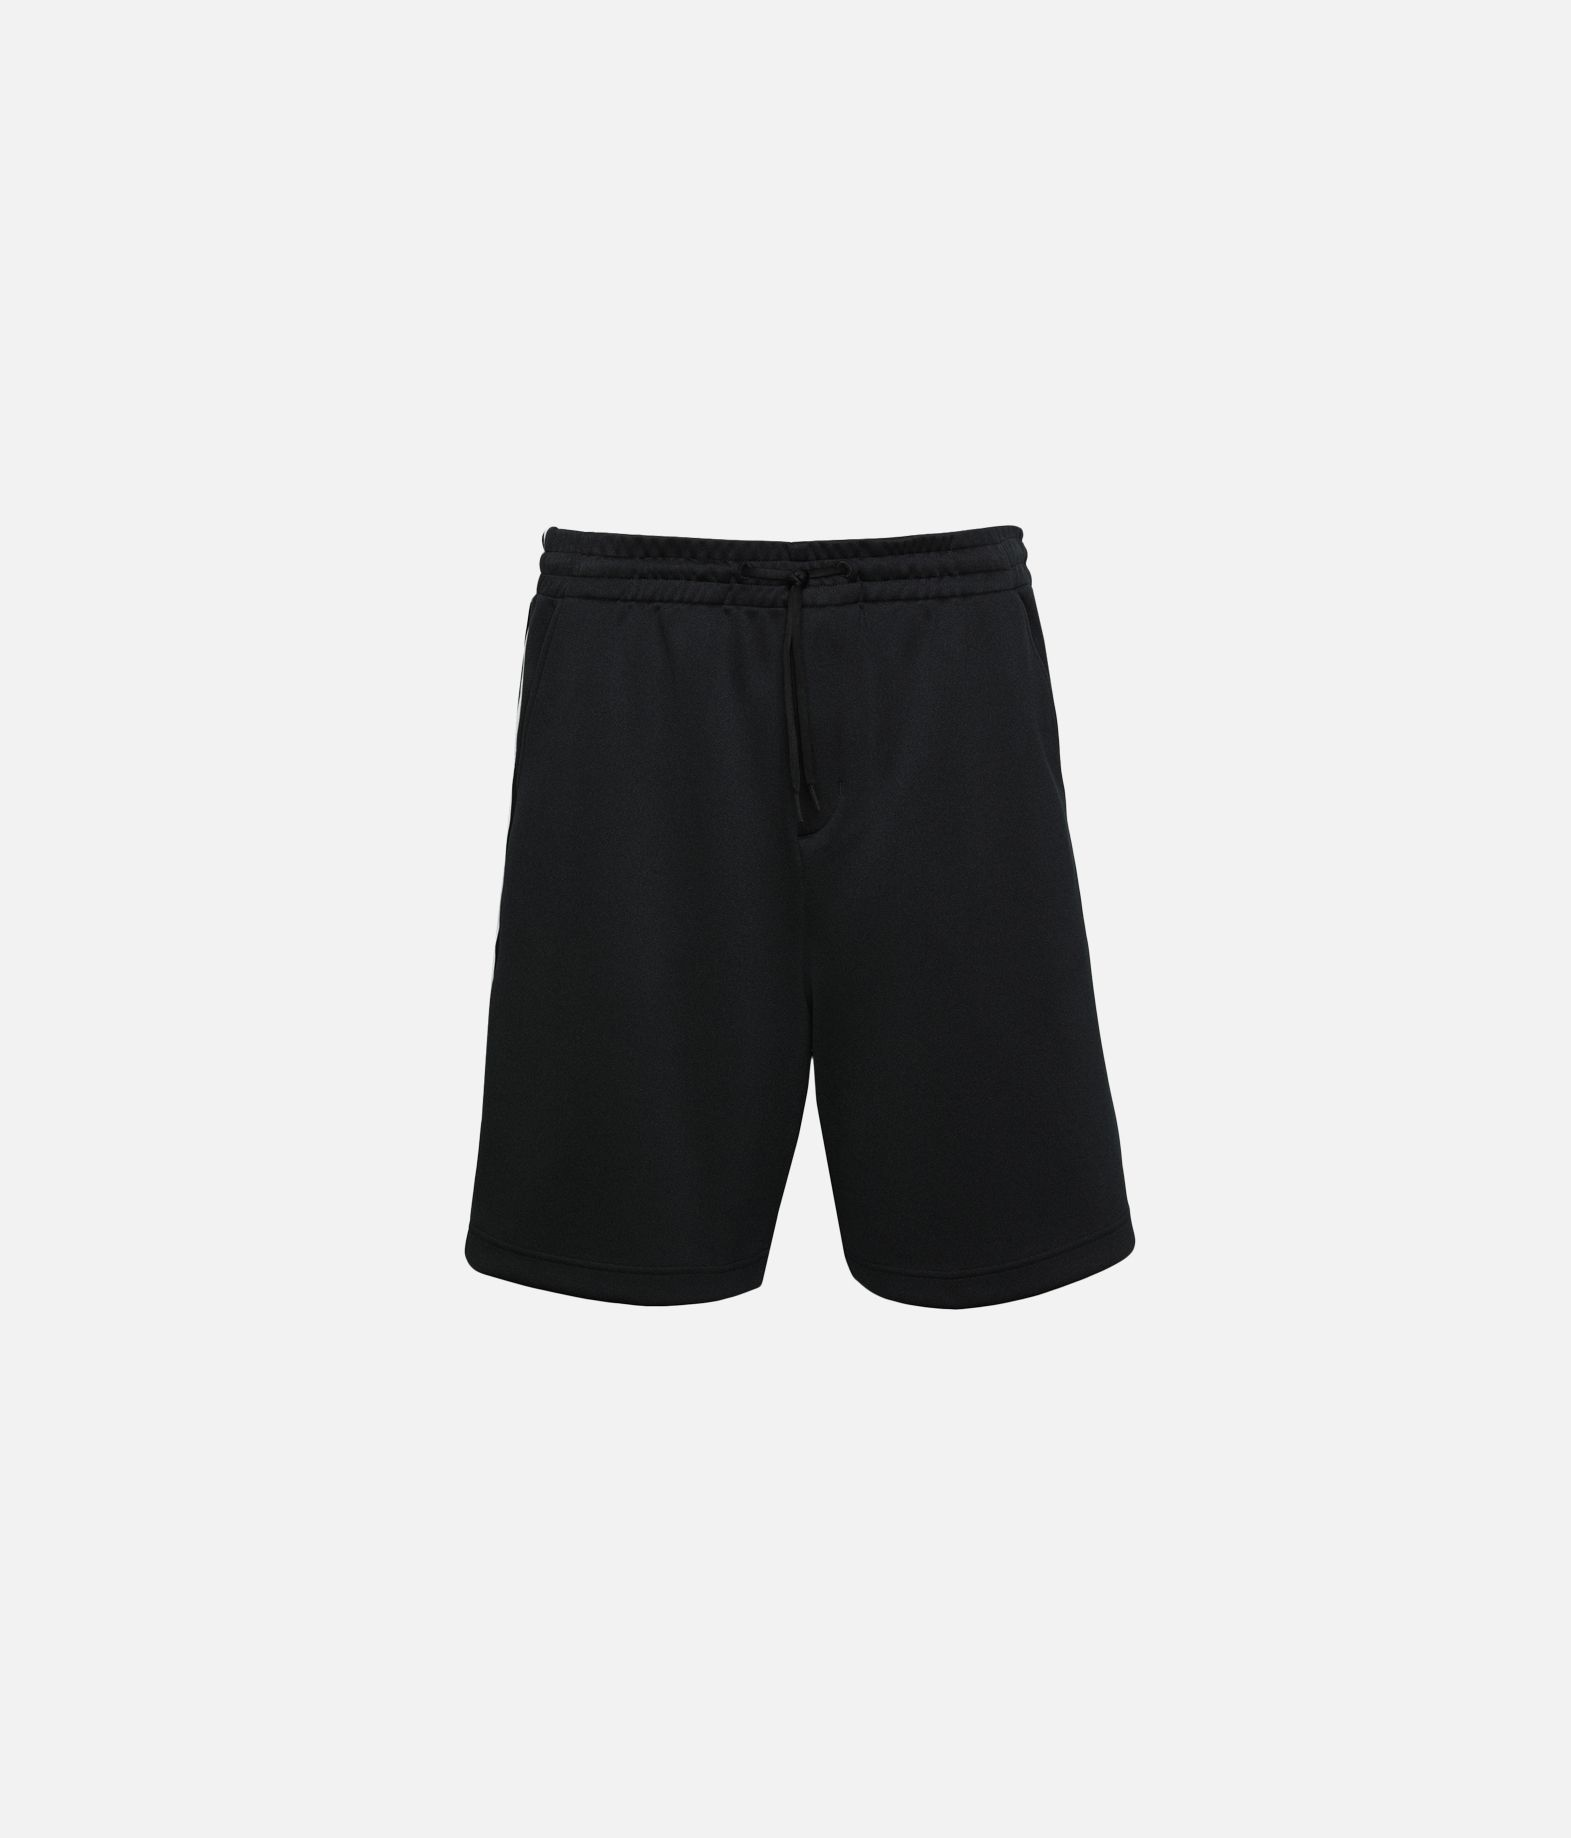 Y-3 Y-3 3-Stripes Track Shorts Track pant Man f